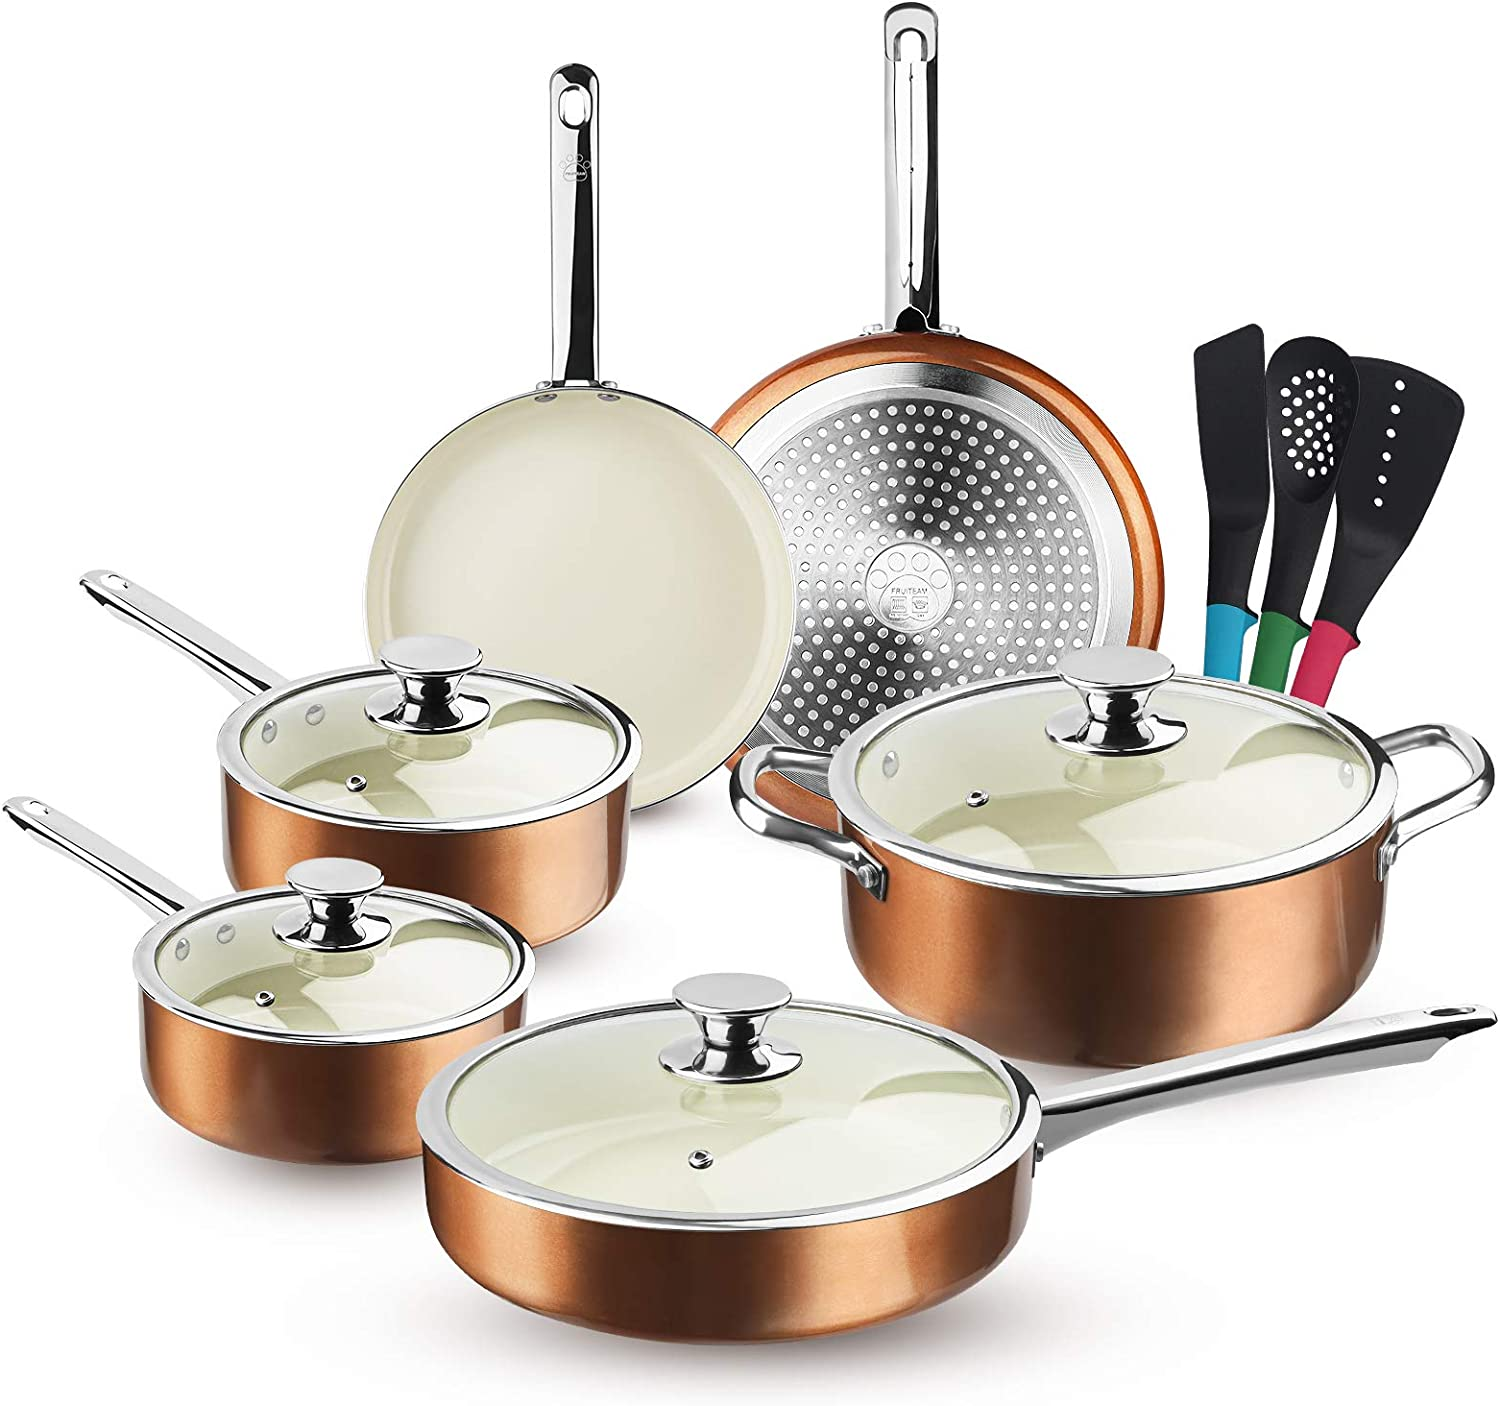 Top 10 Best Signature Cookware For Gas Stove [ Buying Guide -2021] 5